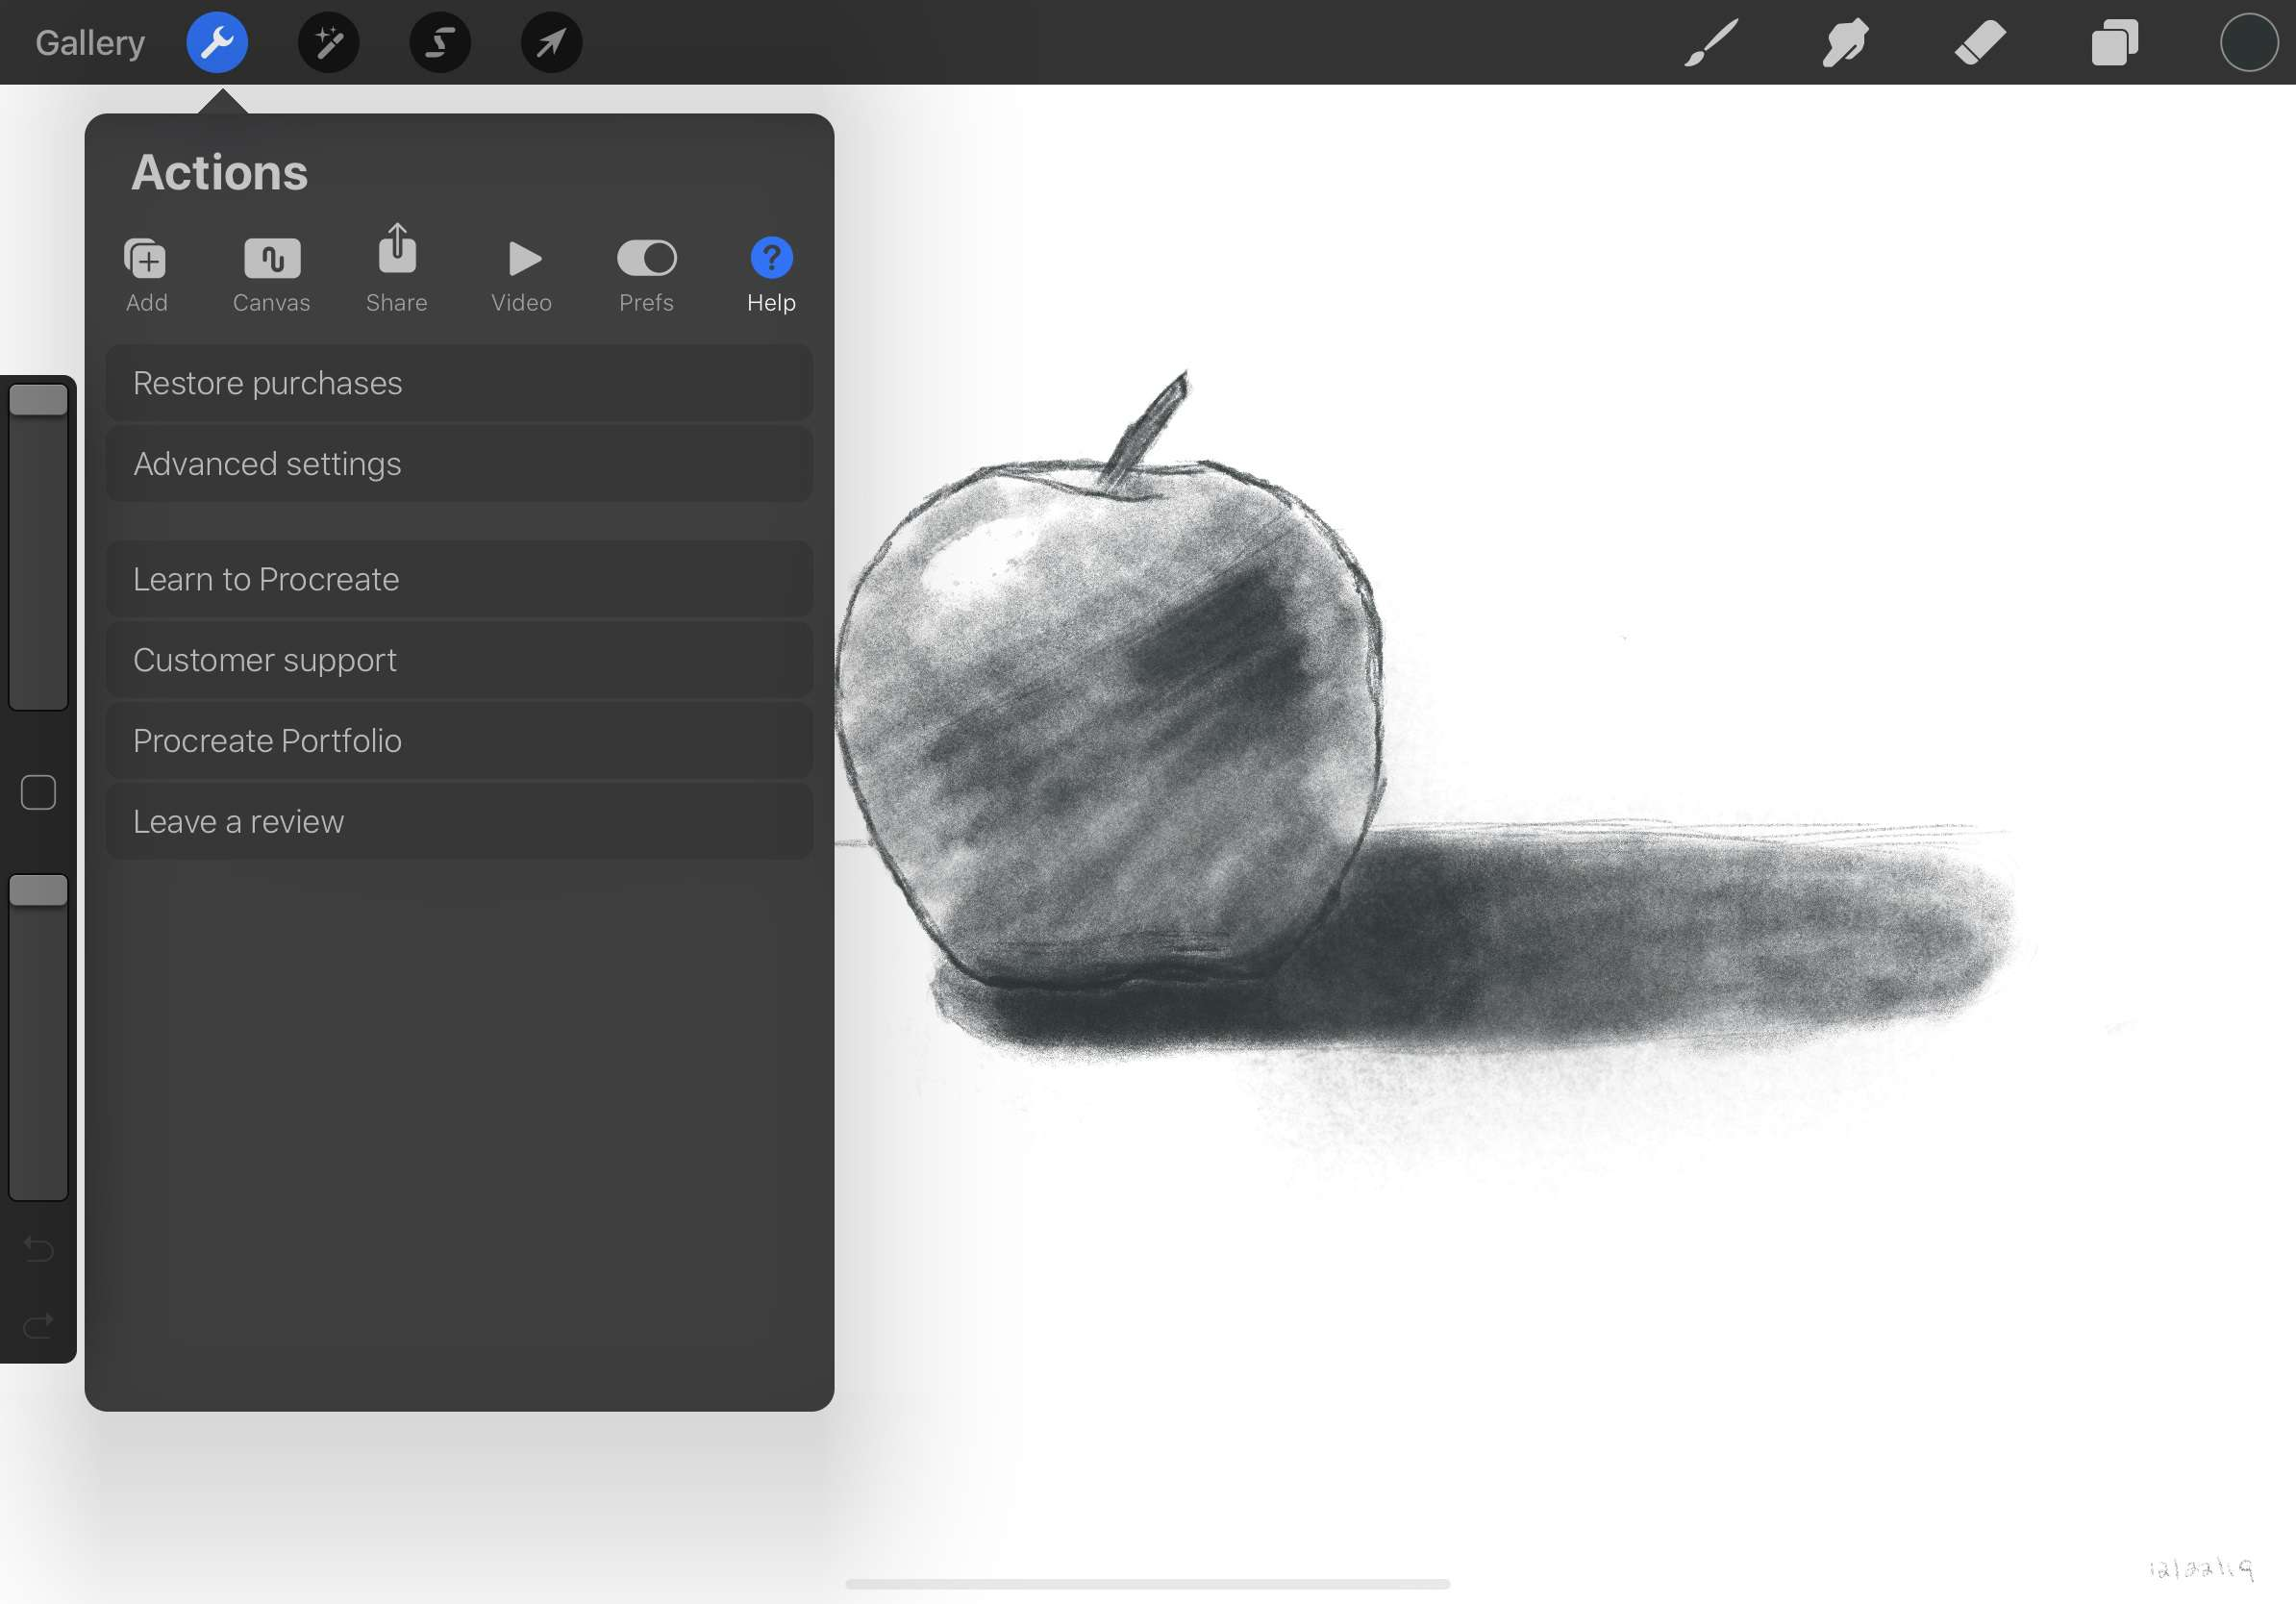 Procreate users can find help in the Actions menu